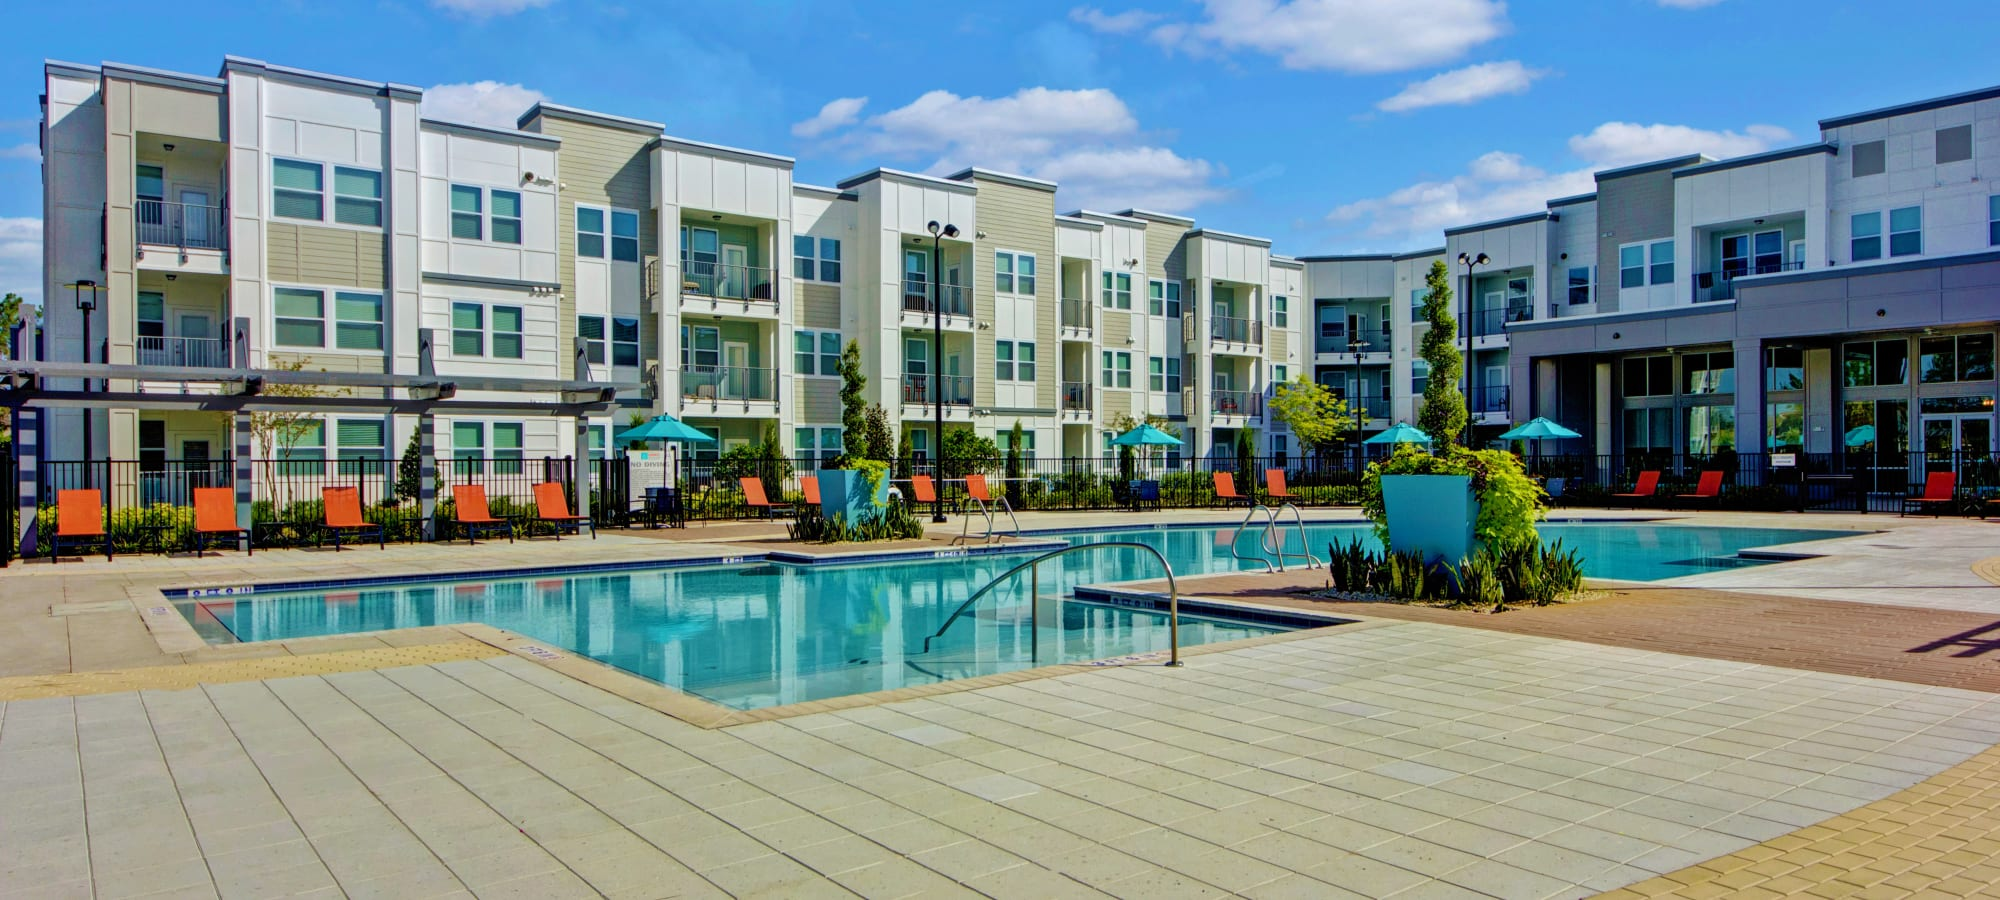 Apartments at Linden on the GreeneWay in Orlando, Florida